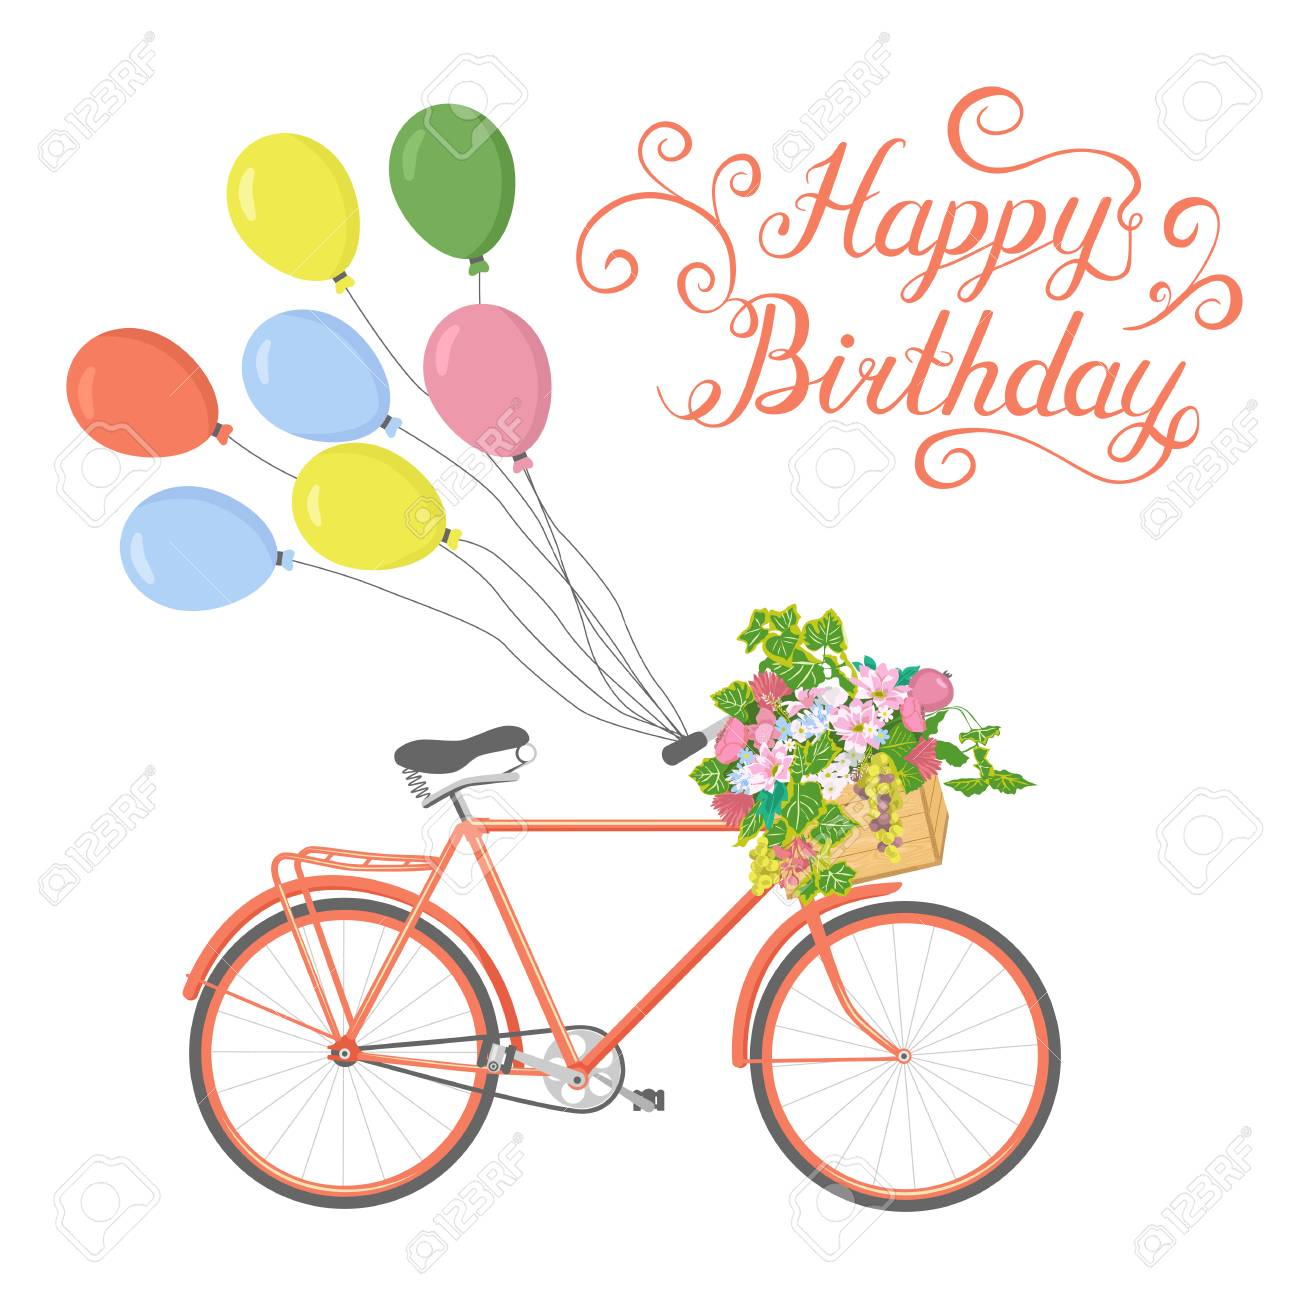 Hand Drawn Bicycle With Flowers And Balloons Greeting Card With